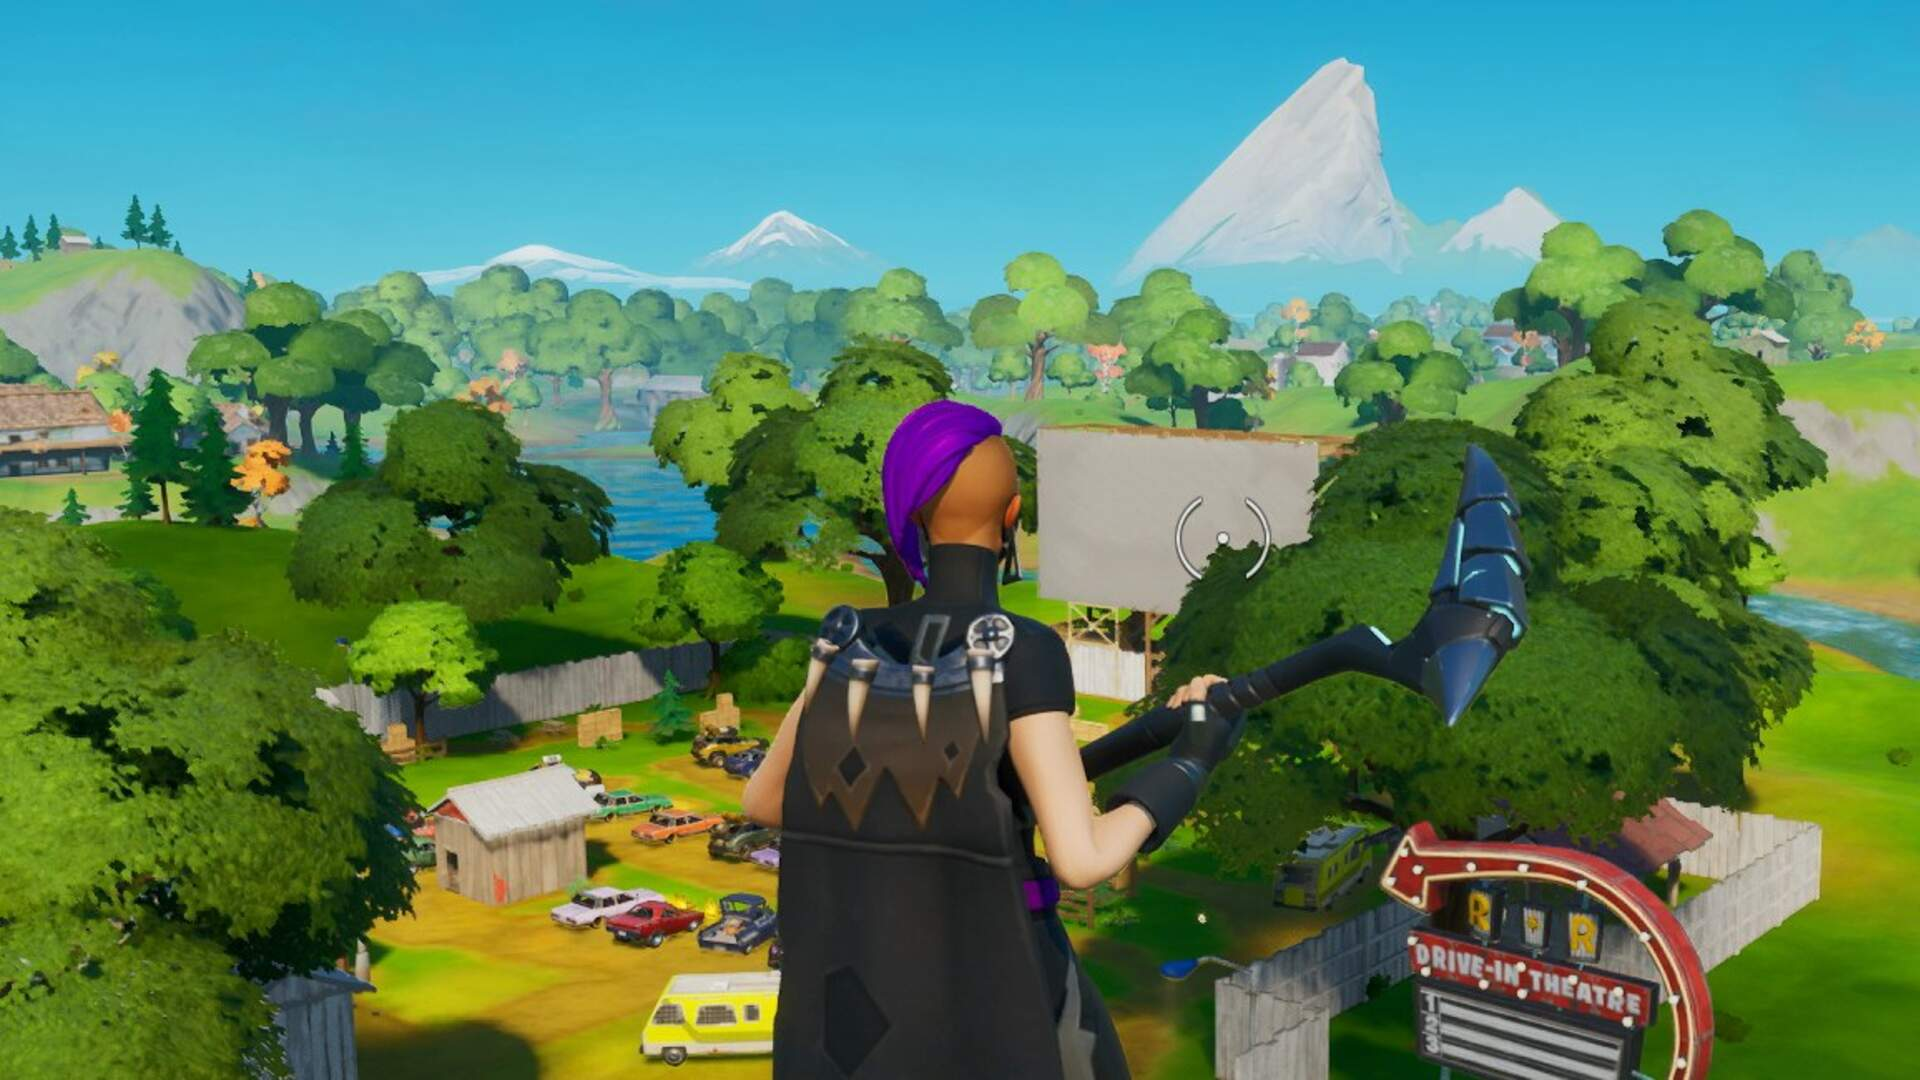 How to Complete the Fortnite Pipeman, Hayman, Timber Tent Locations Challenge